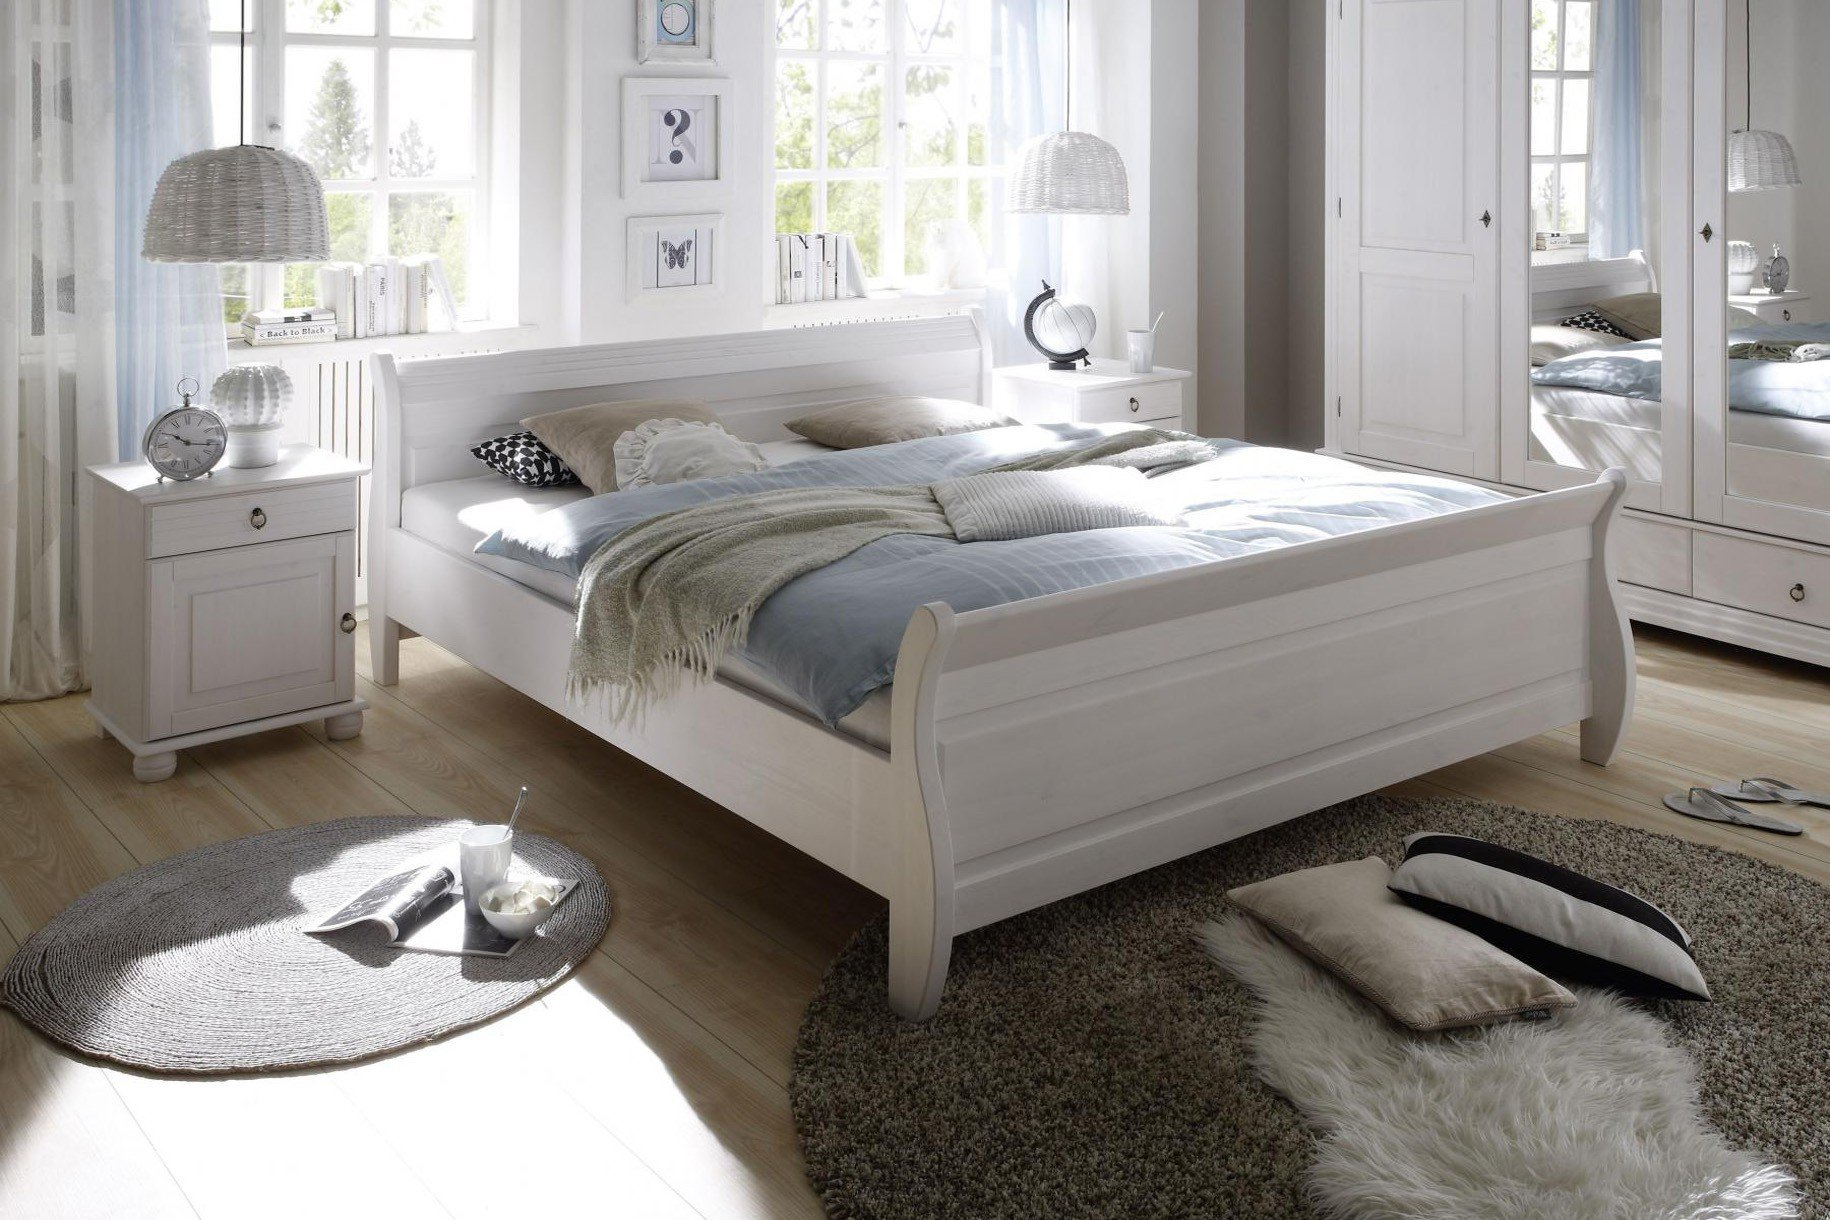 pol power oslo landhaus bett wei massiv m bel letz ihr online shop. Black Bedroom Furniture Sets. Home Design Ideas